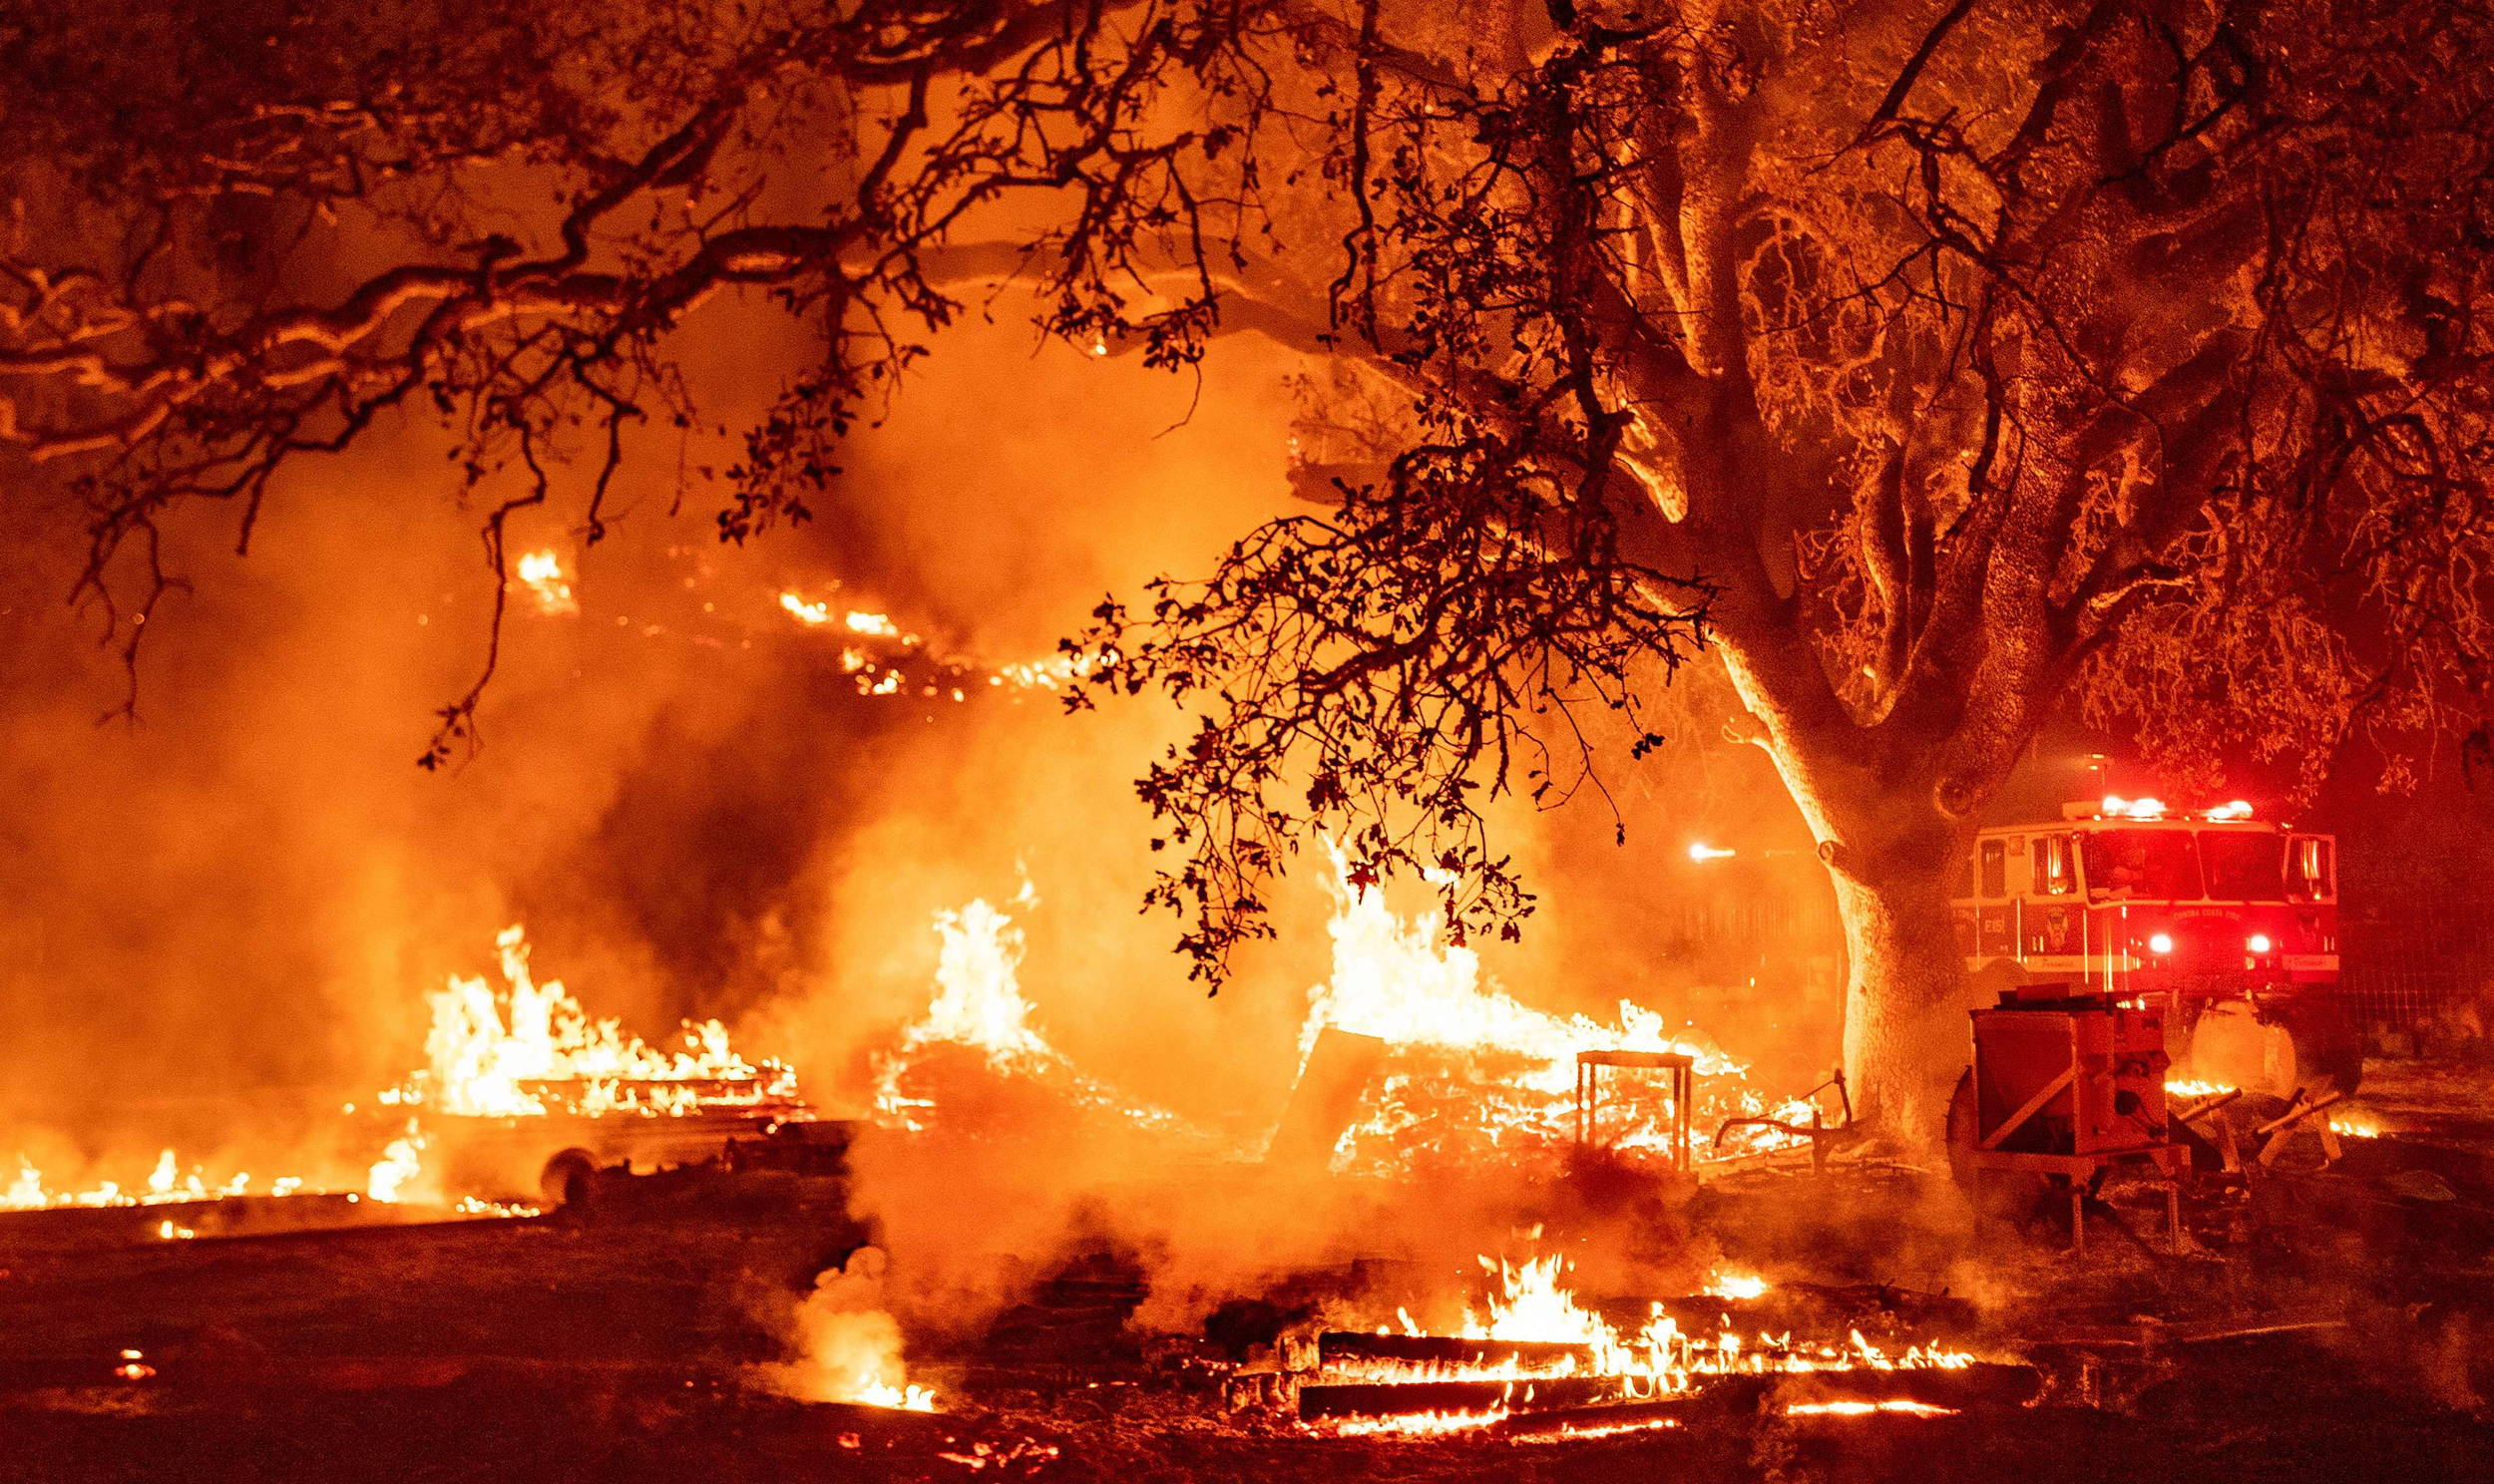 The Deadly Wildfire Disasters Of California